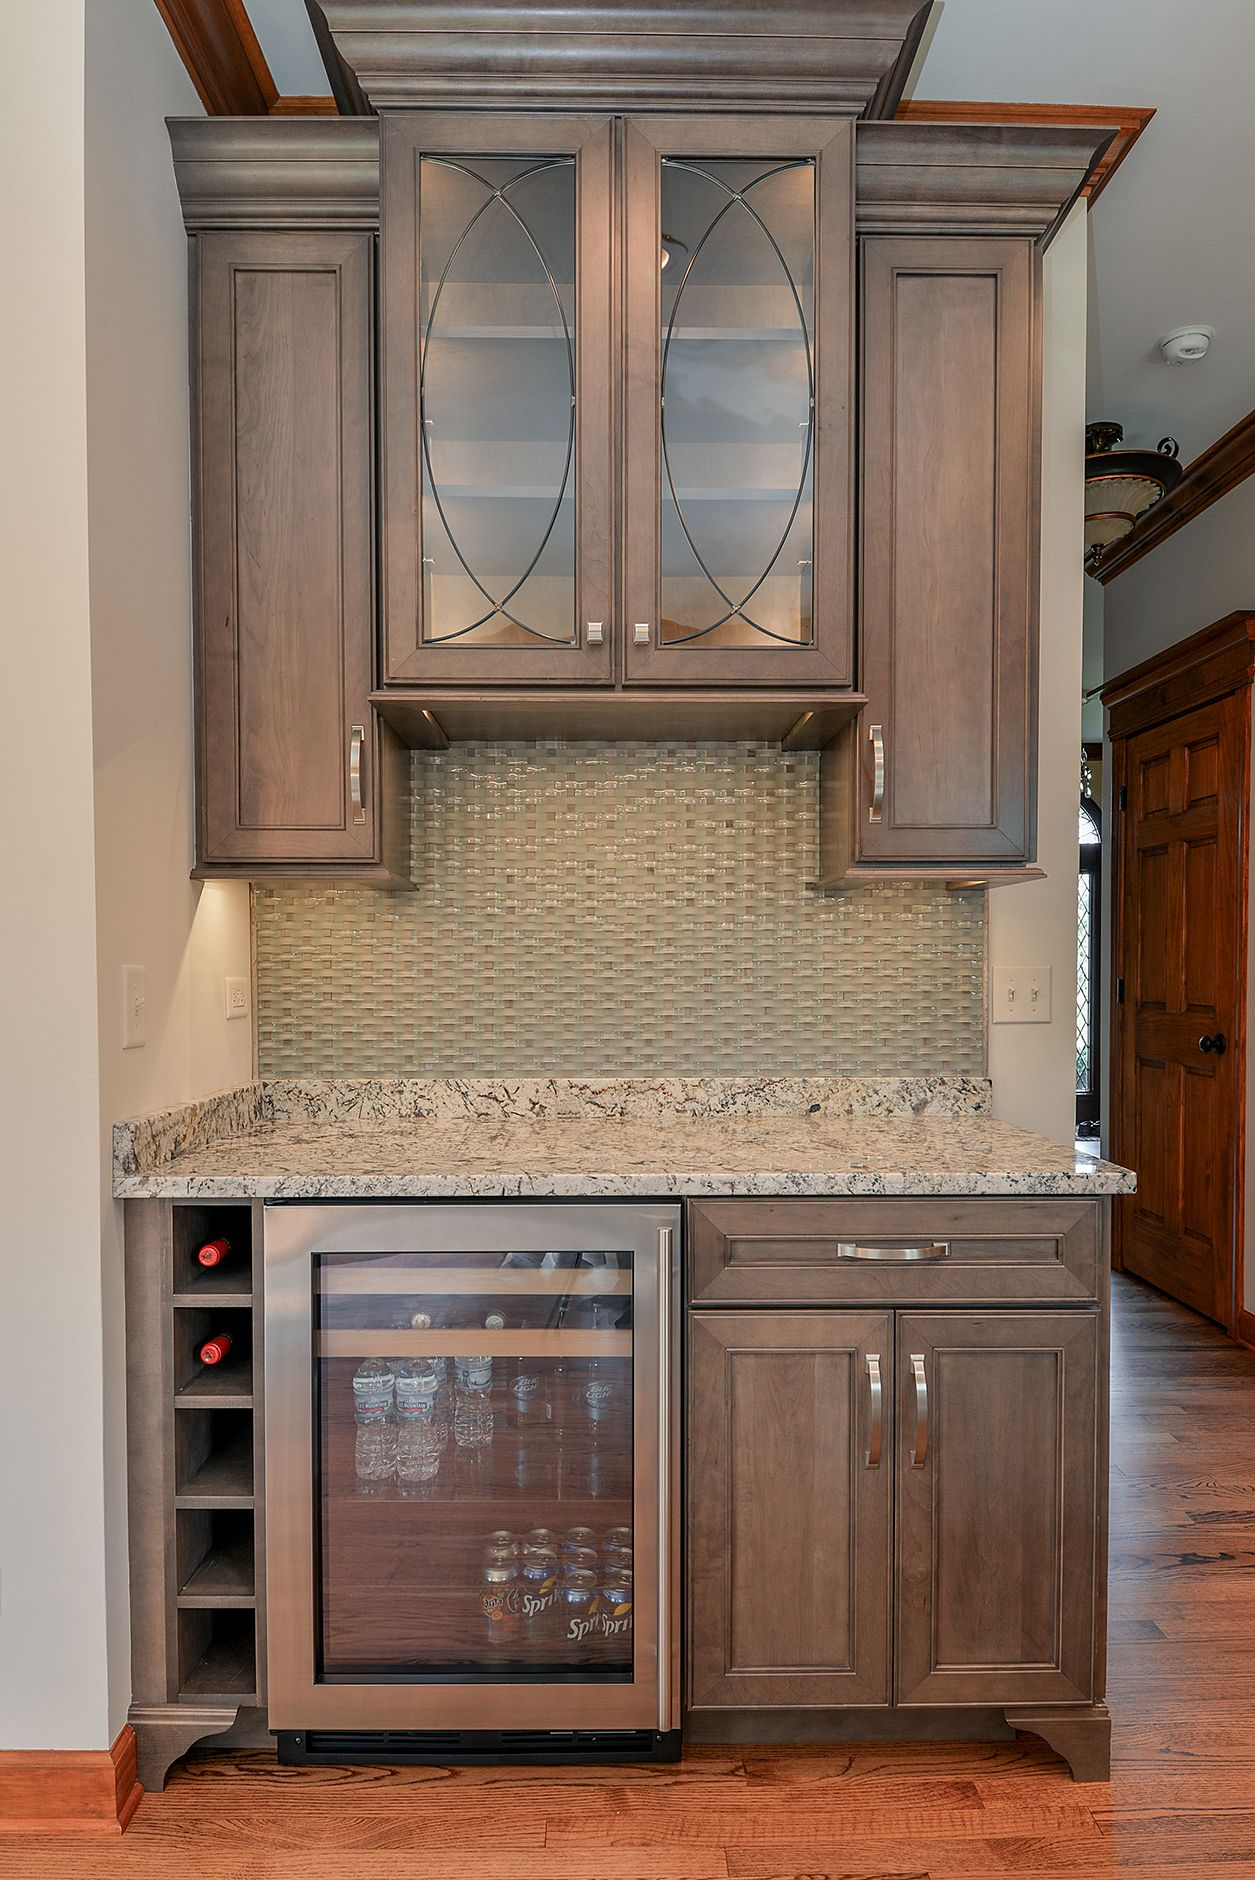 Kitchen Refreshment Center Wellborn Cabinet Inc Premier Series Sonoma Door Style On Maple Wo Stained Kitchen Cabinets New Kitchen Cabinets Staining Cabinets